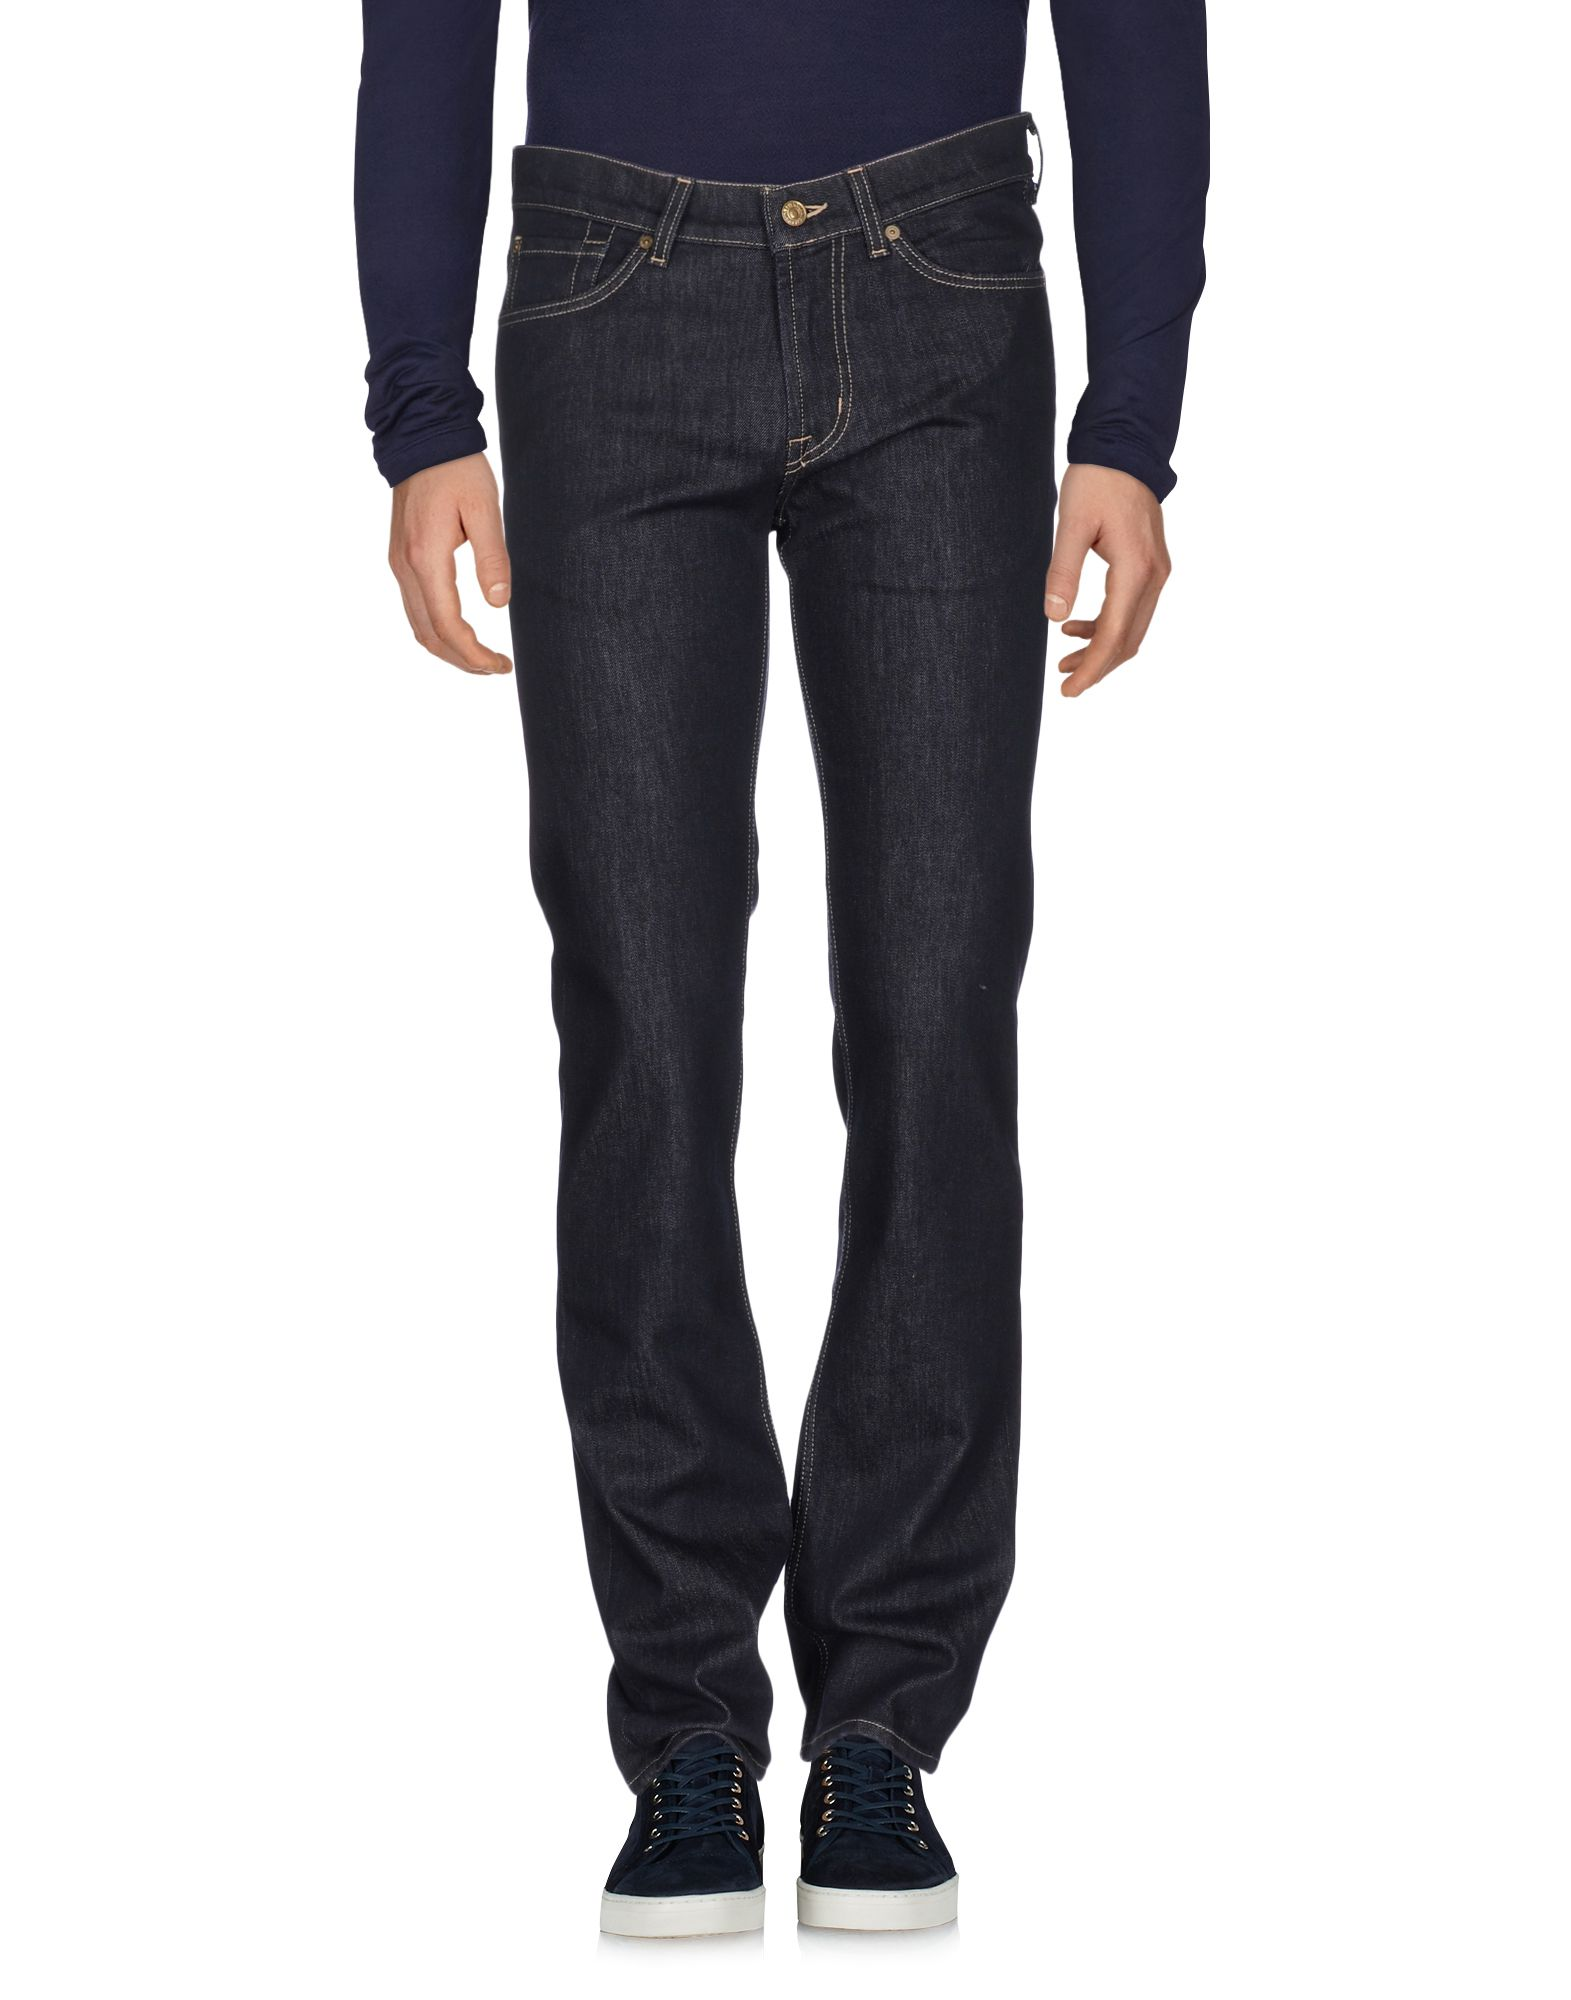 Pantaloni Jeans 42586669GE 7 For All Mankind Uomo - 42586669GE Jeans d52d90